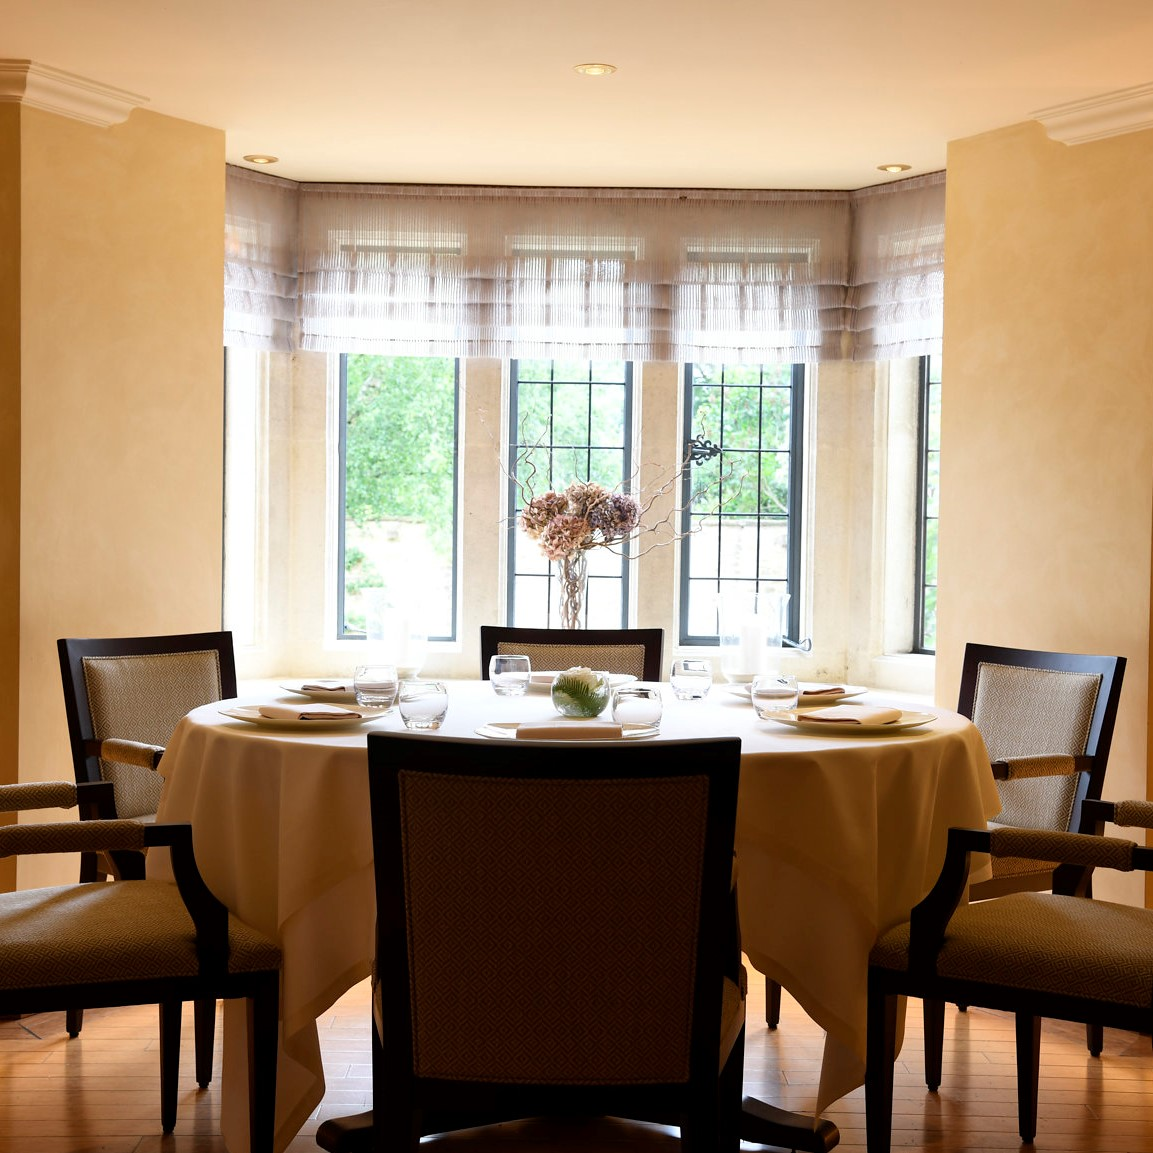 The Dining room at Whatley Manor